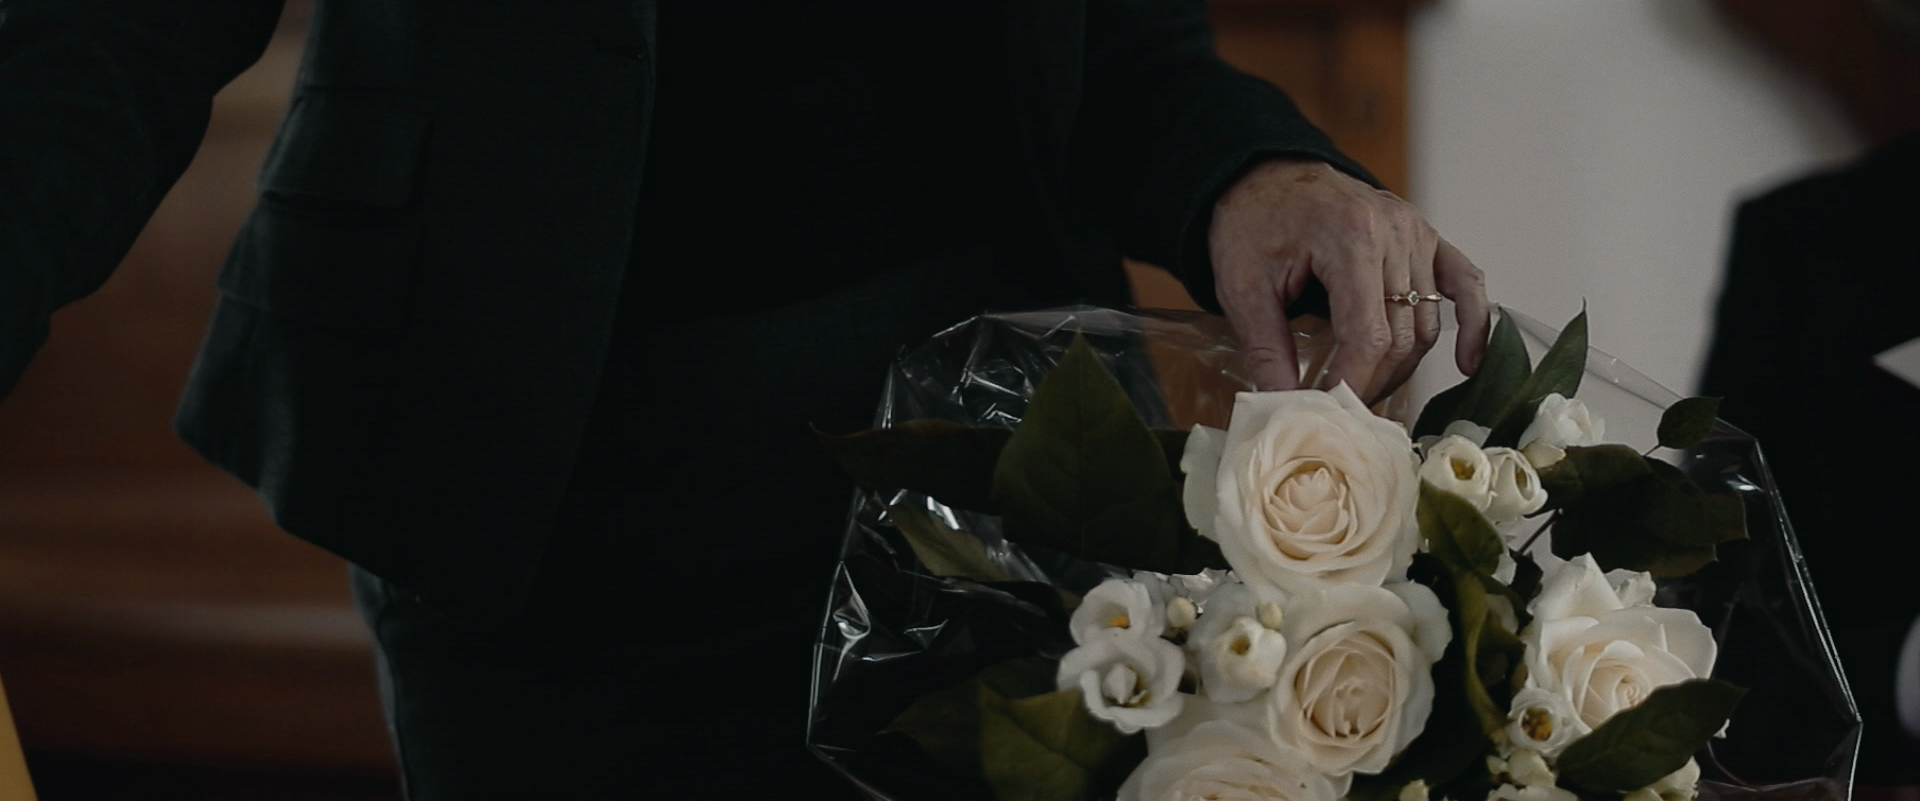 Still from the film Gesloten Deuren. It's a close-up of the mother standing by a bouquet of white flowers.